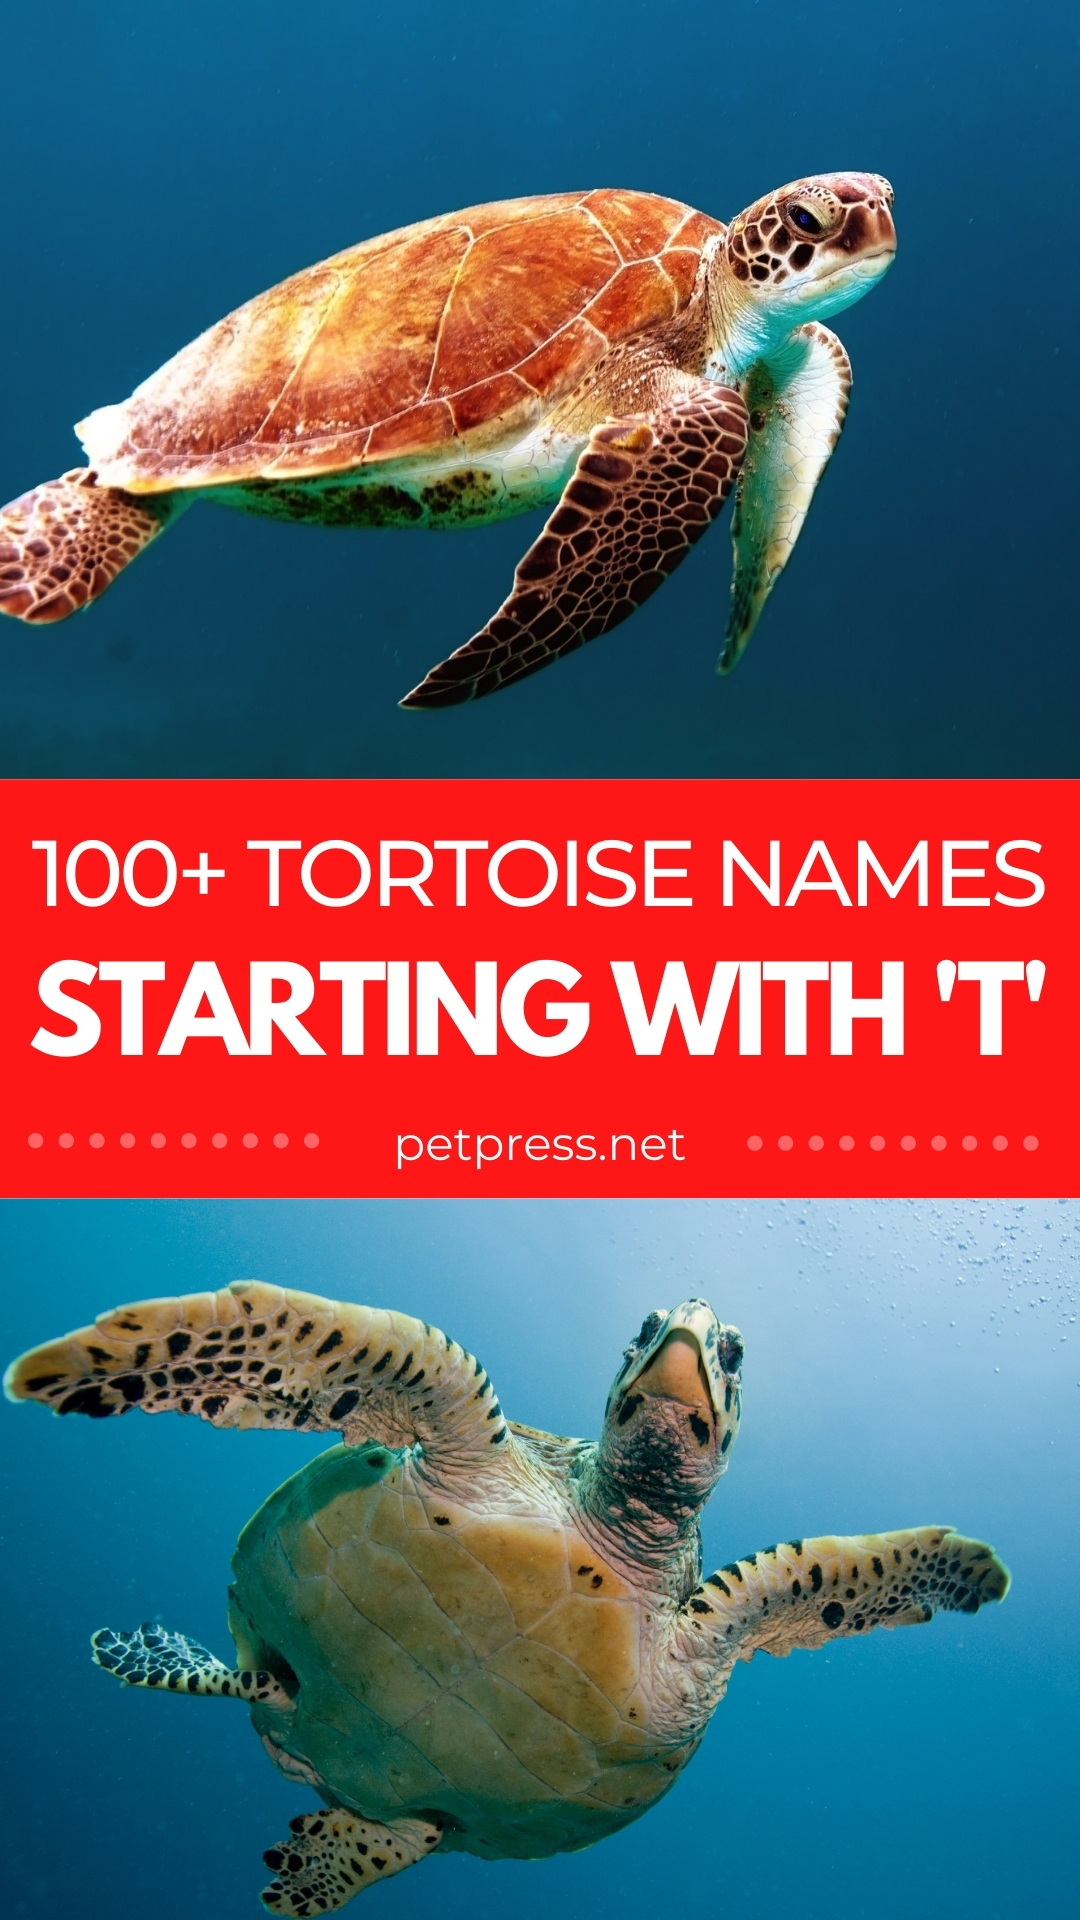 tortoise names starting with T